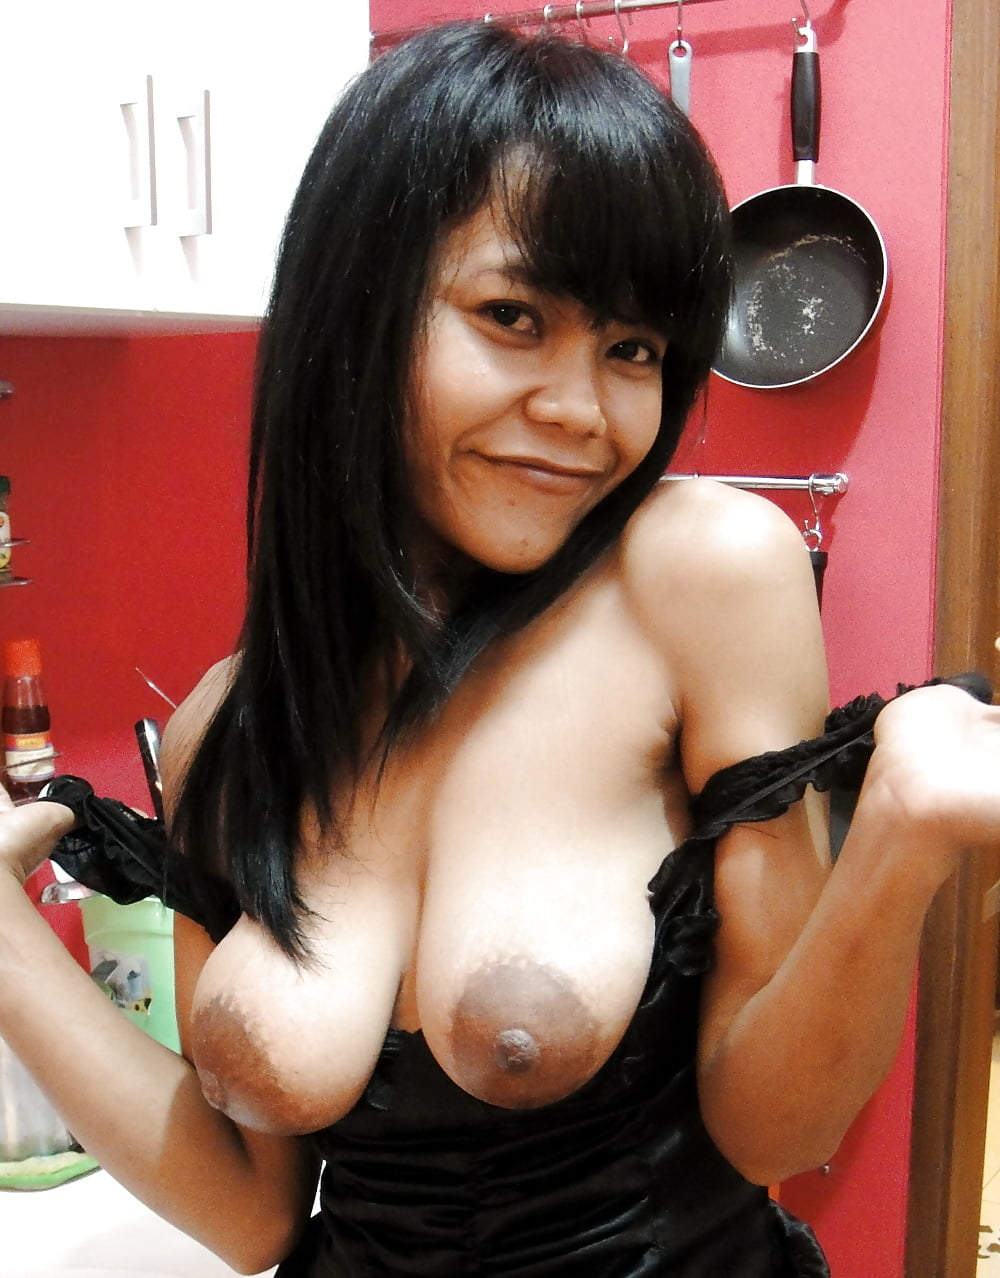 indonesian-boobs-girl-picture-duncannude